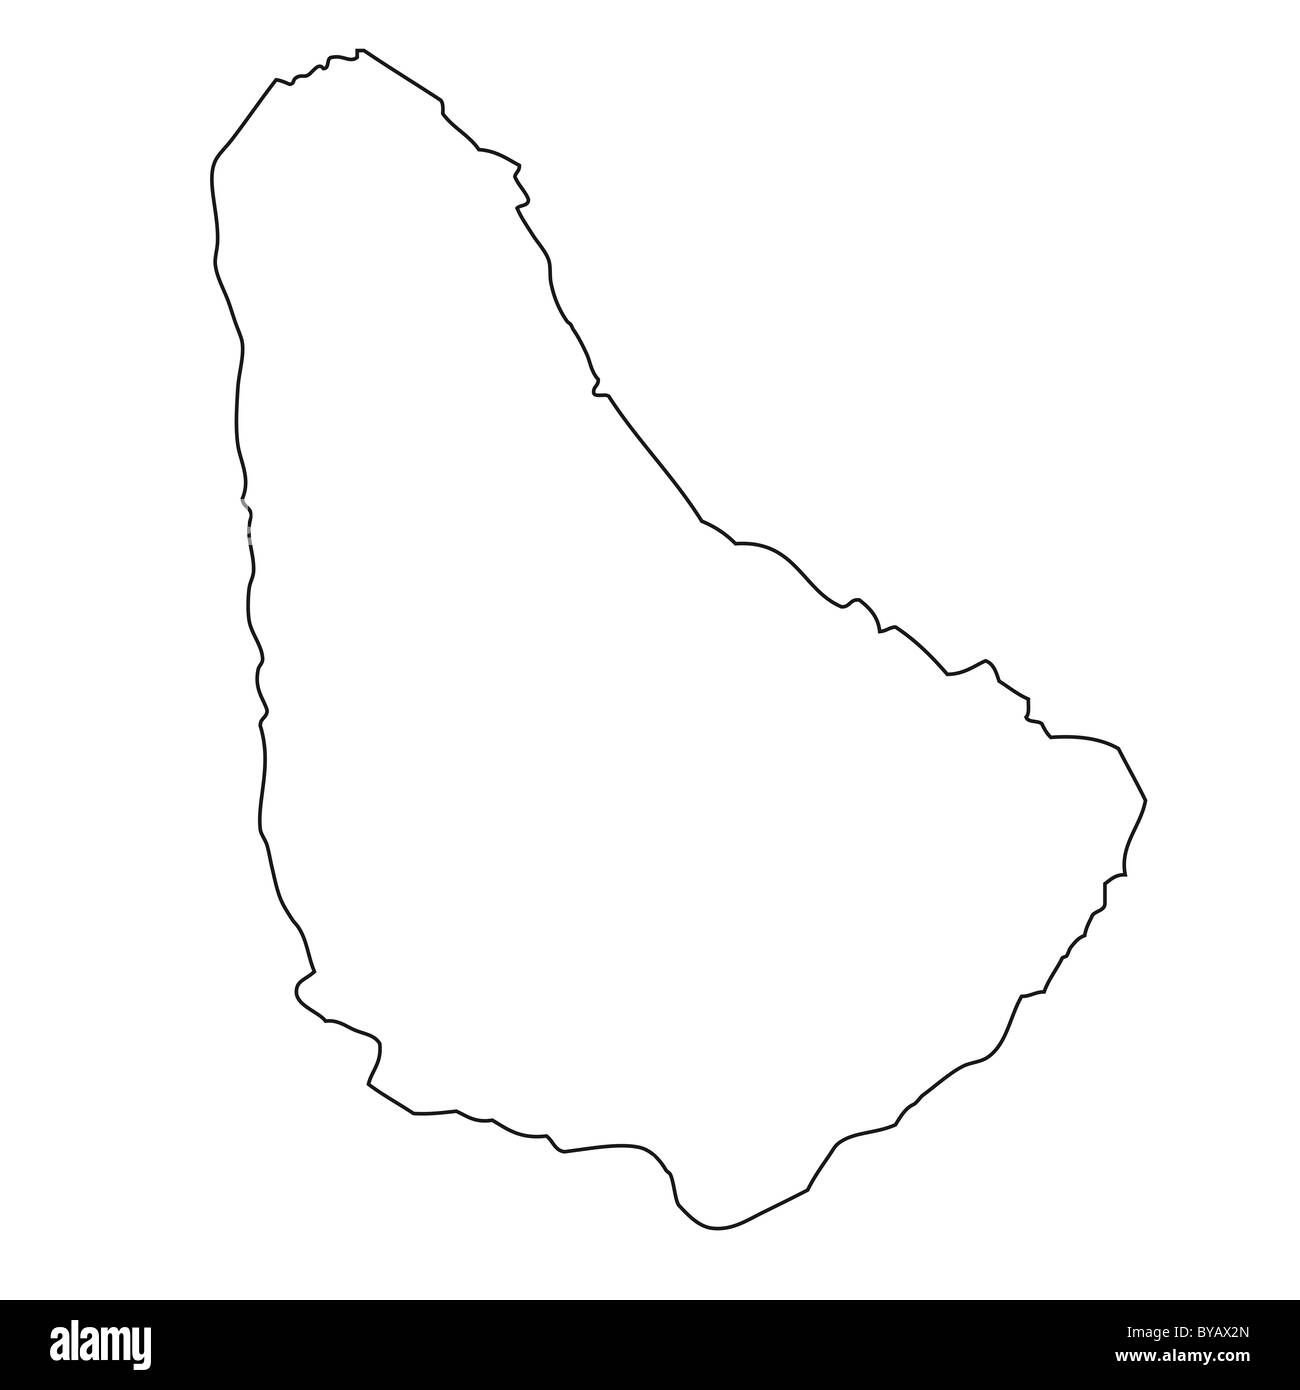 Outline, map of Barbados Stock Photo: 34046061 - Alamy